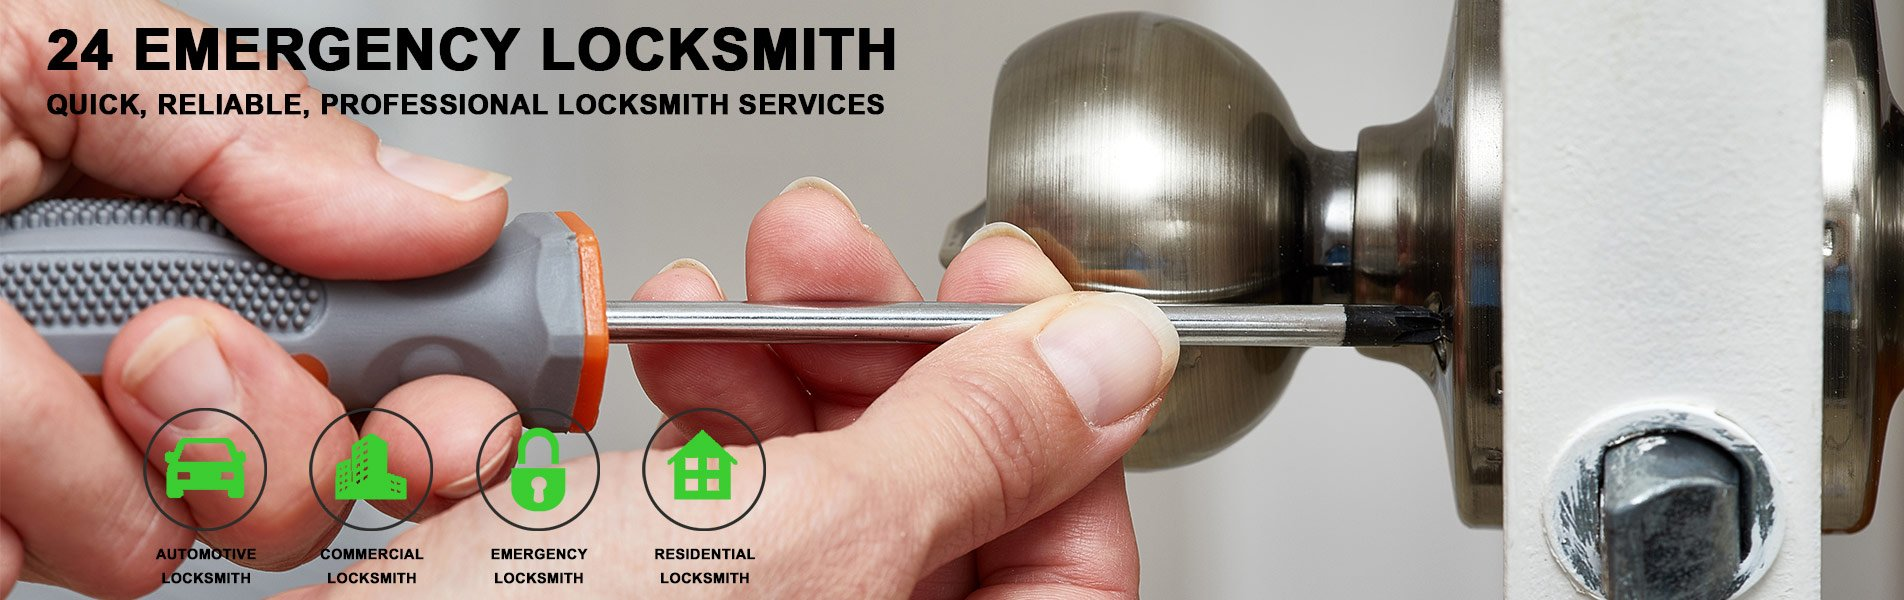 Lock Locksmith Services Saint Paul, MN 651-400-8136